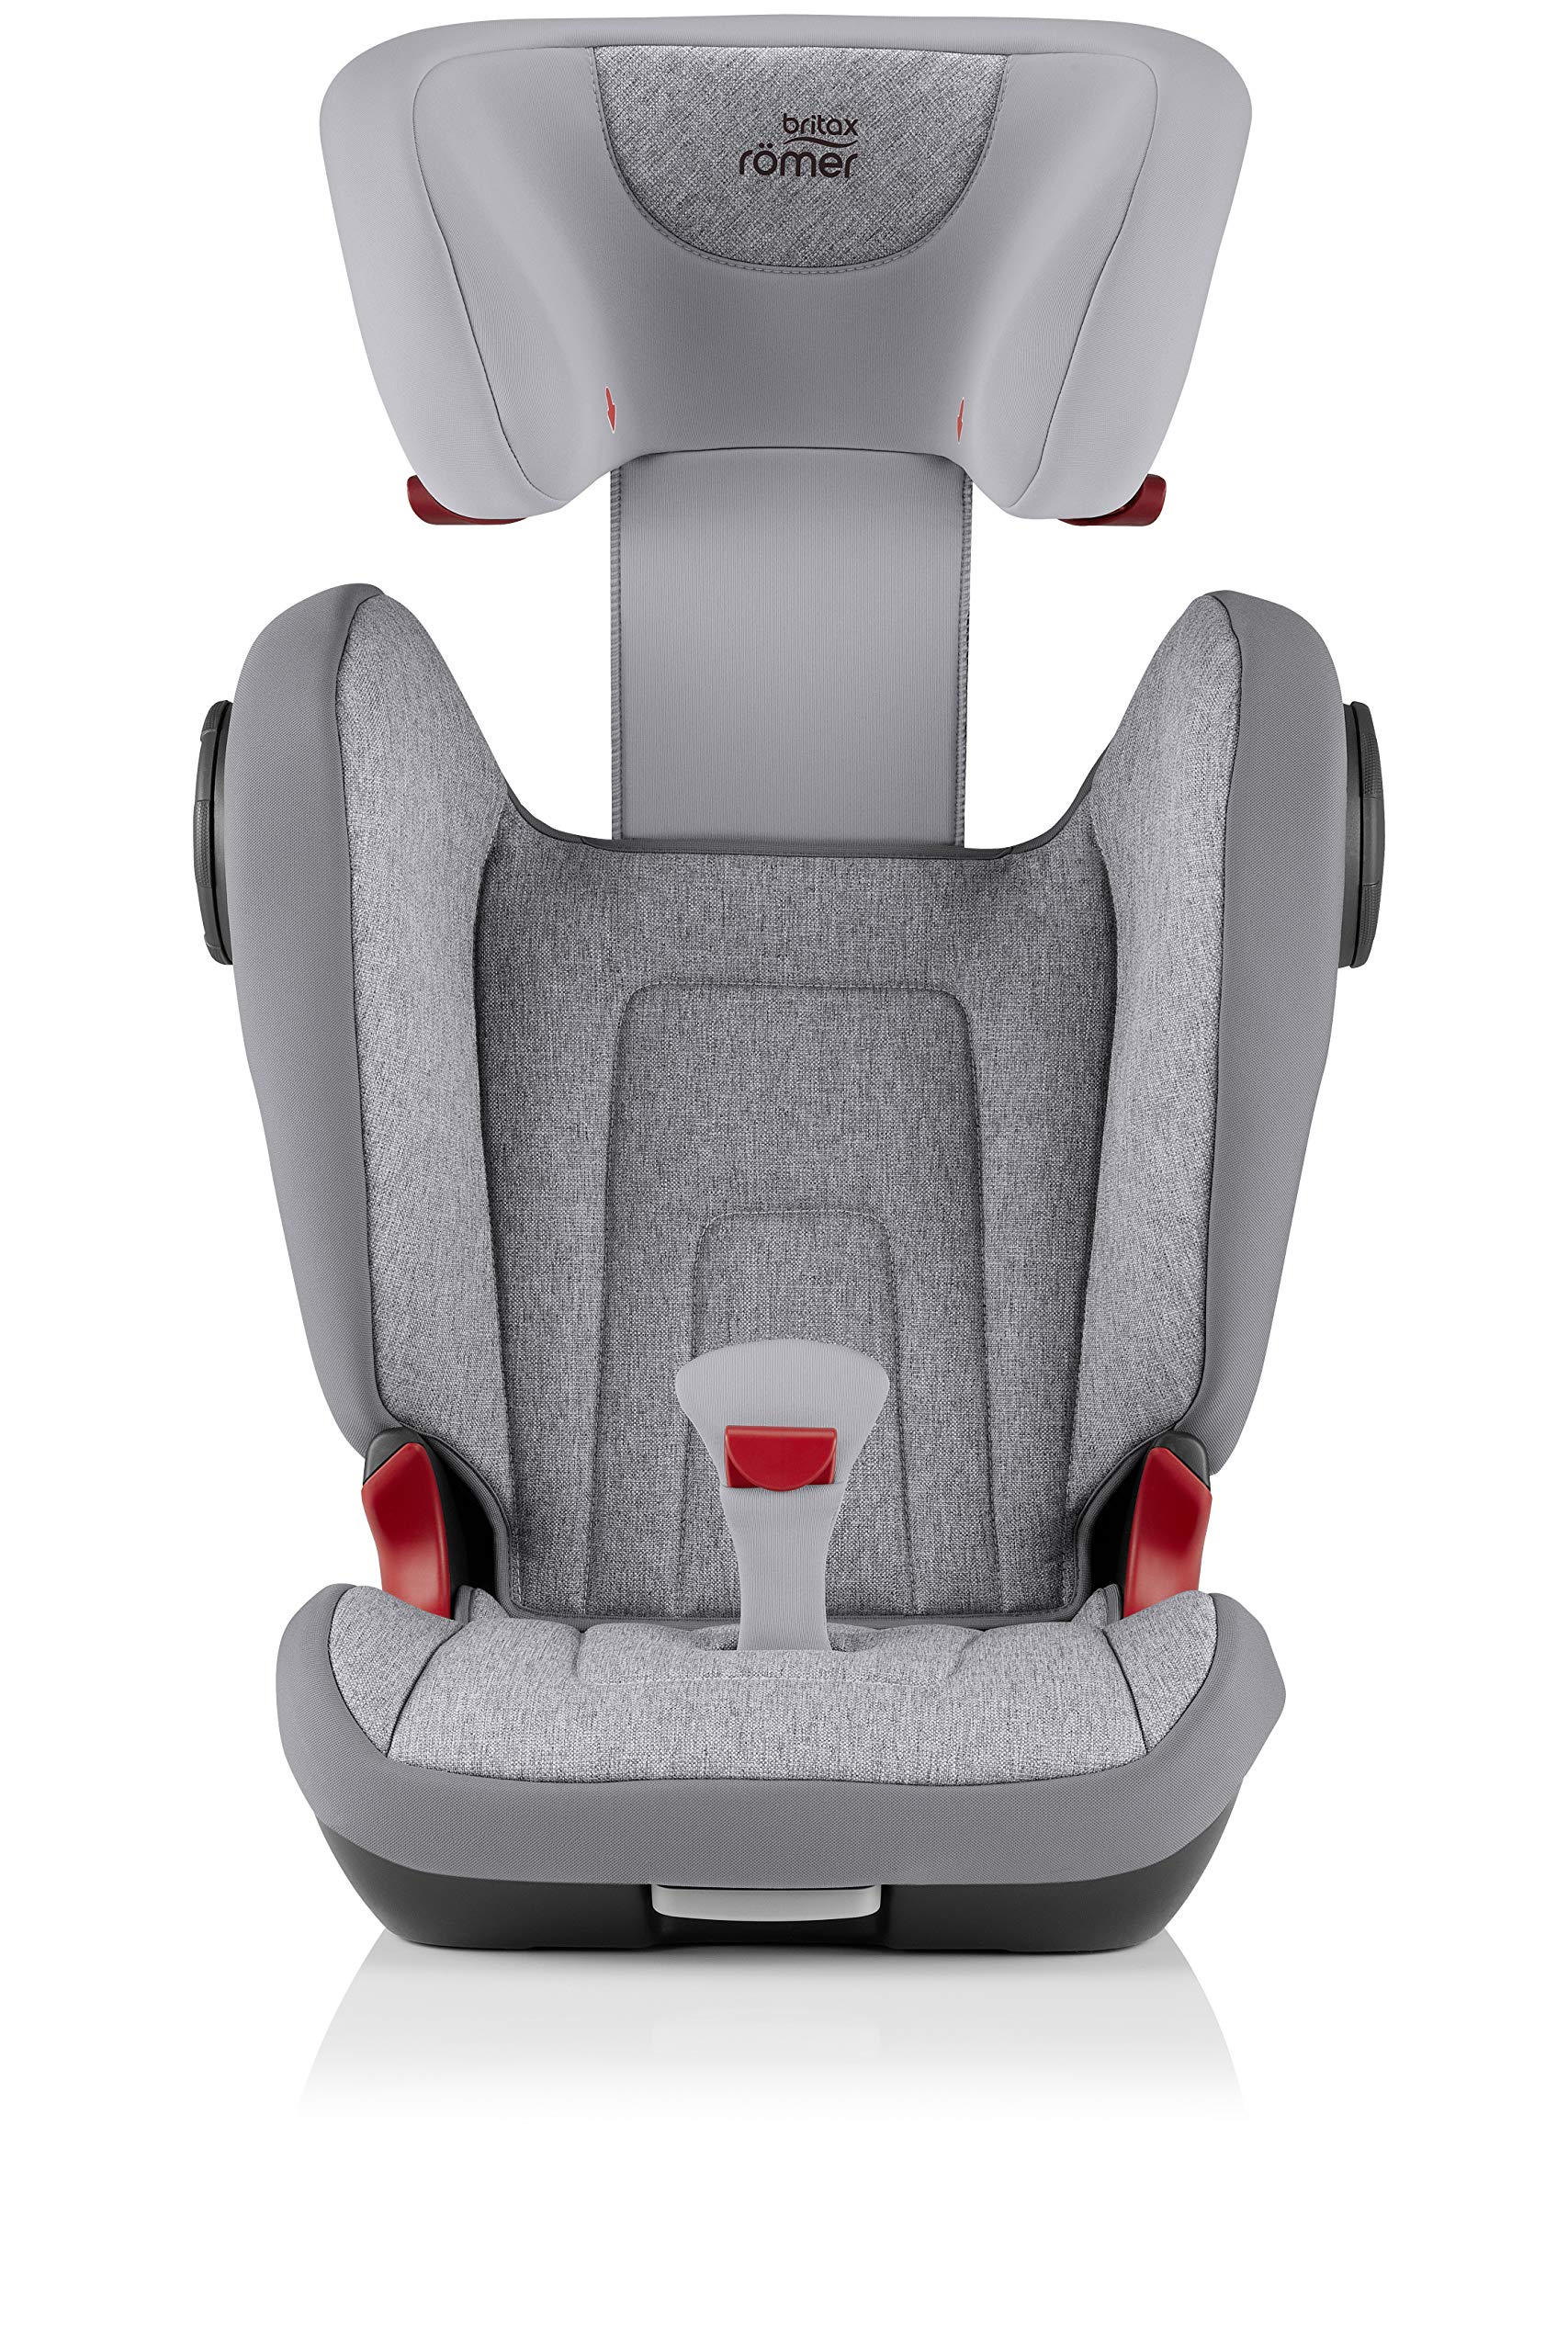 Britax Römer KIDFIX² S Group 2-3 (15-36kg) Car Seat - Grey Marble  Advanced side impact protection - sict offers superior protection to your child in the event of a side collision. reducing impact forces by minimising the distance between the car and the car seat. Secure guard - helps to protect your child's delicate abdominal area by adding an extra - a 4th - contact point to the 3-point seat belt. High back booster - protects your child in 3 ways: provides head to hip protection; belt guides provide correct positioning of the seat belt and the padded headrest provides safety and comfort. 7